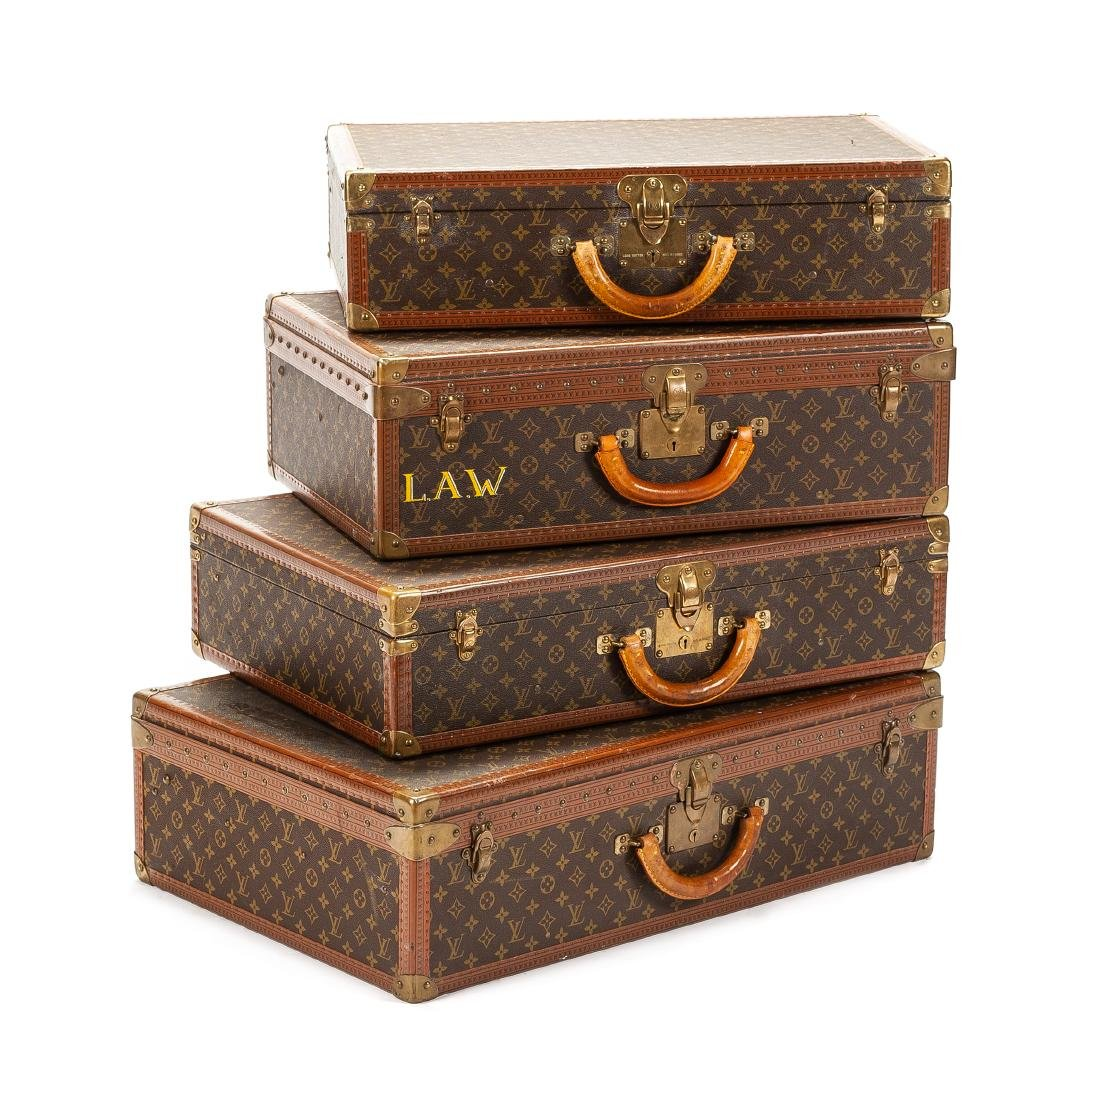 Four Louis Vuitton Suitcases Height 20 x width 29 3/4 x